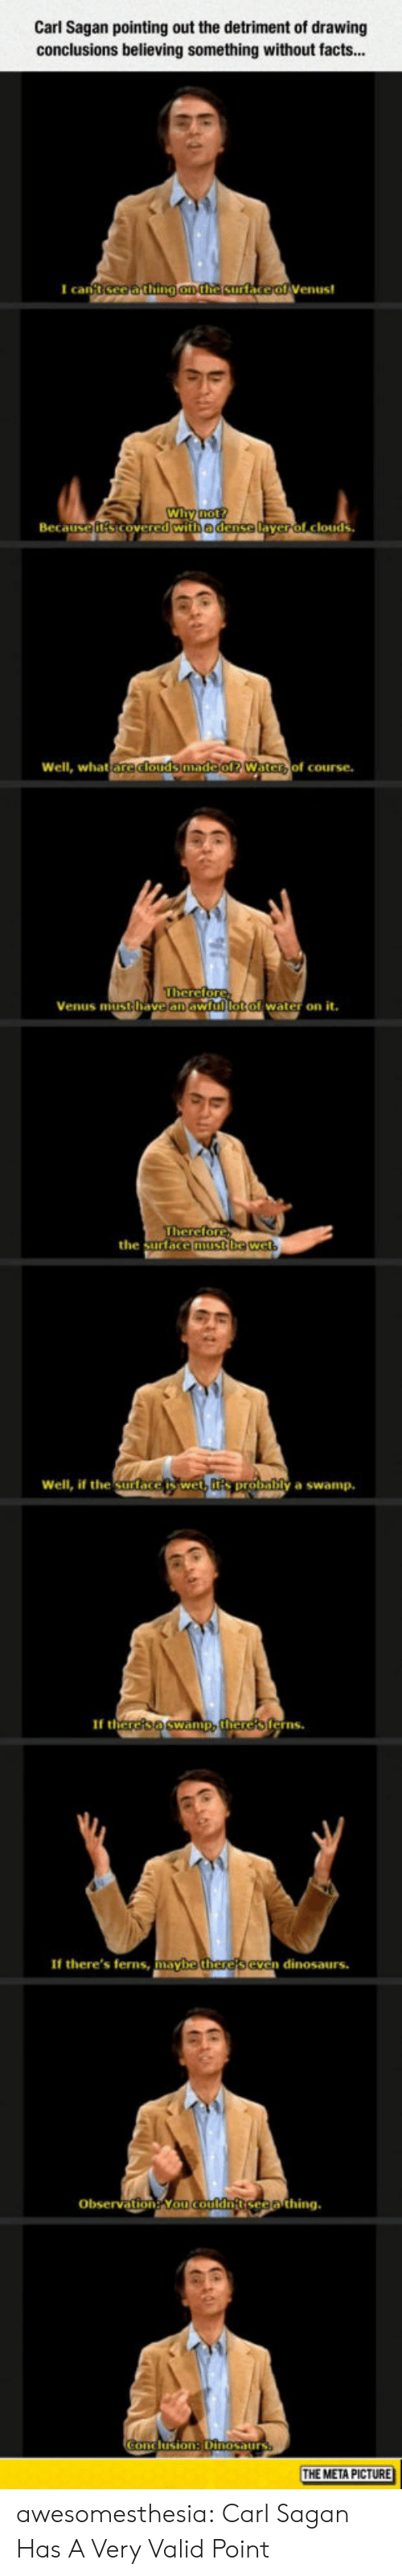 Facts, Tumblr, and Yo: Carl Sagan pointing out the detriment of drawing  conclusions believing something without facts...  I can  Wi  Beca  edense  yerol clouds  Well, what  of course.  Venus mitithave an aw  water on it.  the surtace  Well, if the Surlace  y a swamp.  If th  erns  If there's ferns, mayb  n dinosaurs.  Obsevation Yo  THE META PICTURE awesomesthesia:  Carl Sagan Has A Very Valid Point